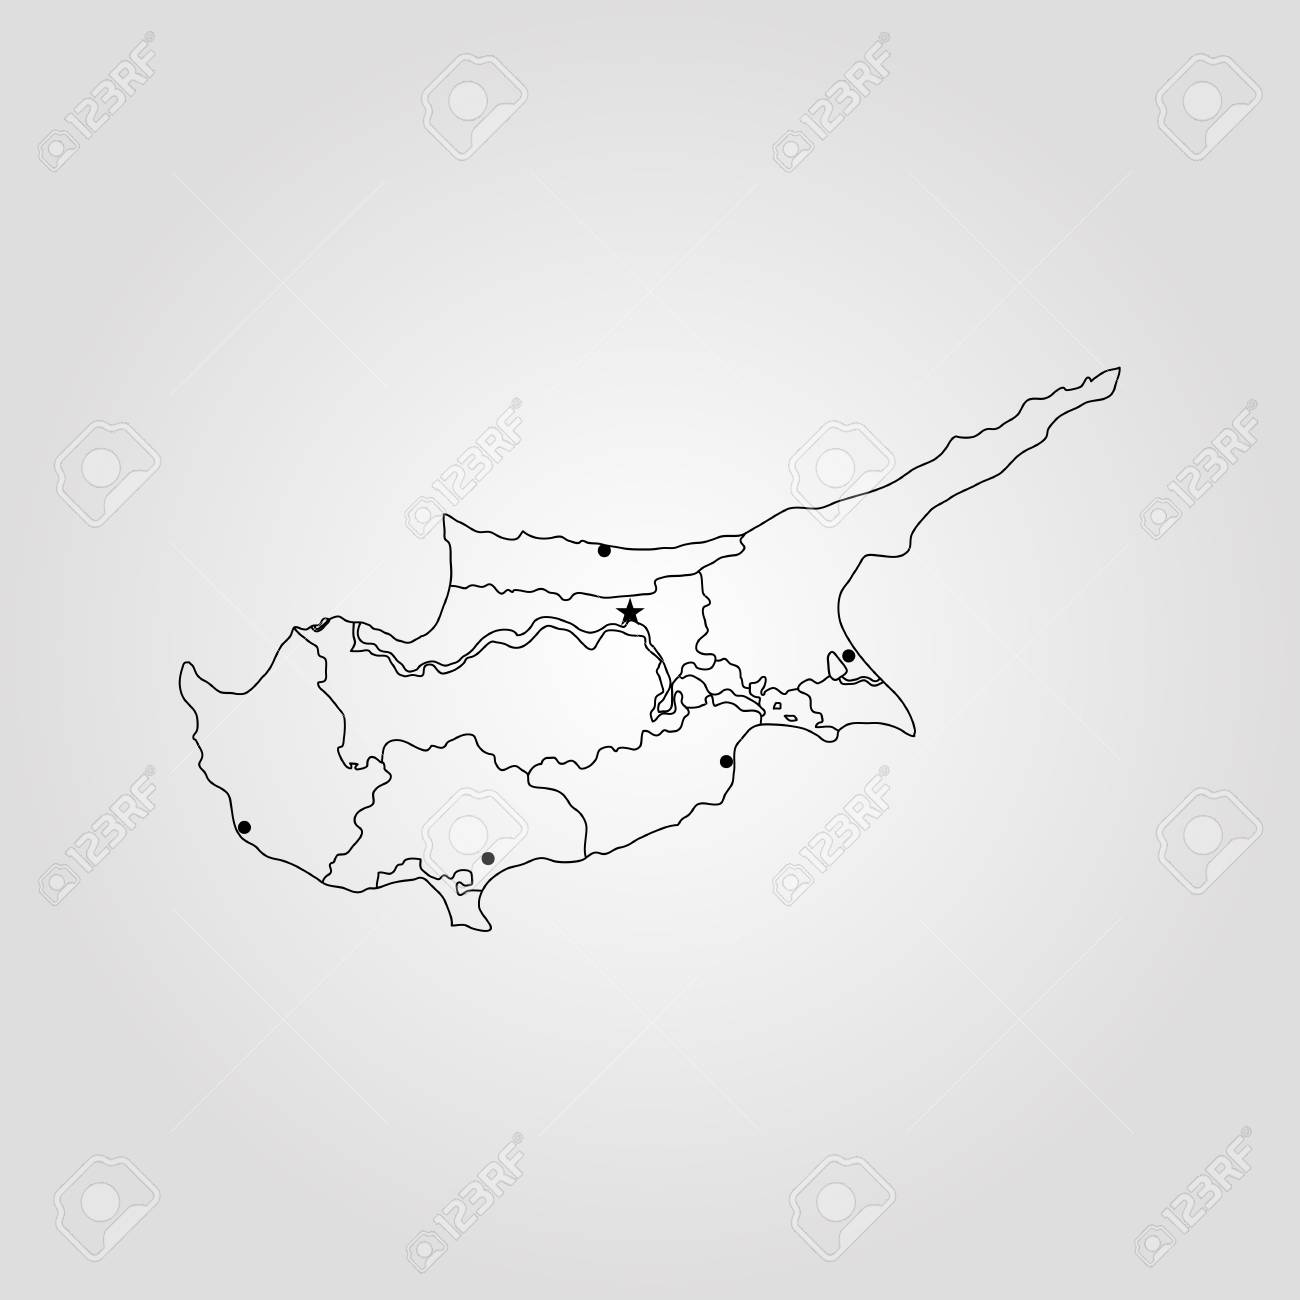 Map of cyprus vector illustration world map royalty free cliparts map of cyprus vector illustration world map stock vector 89750793 publicscrutiny Gallery